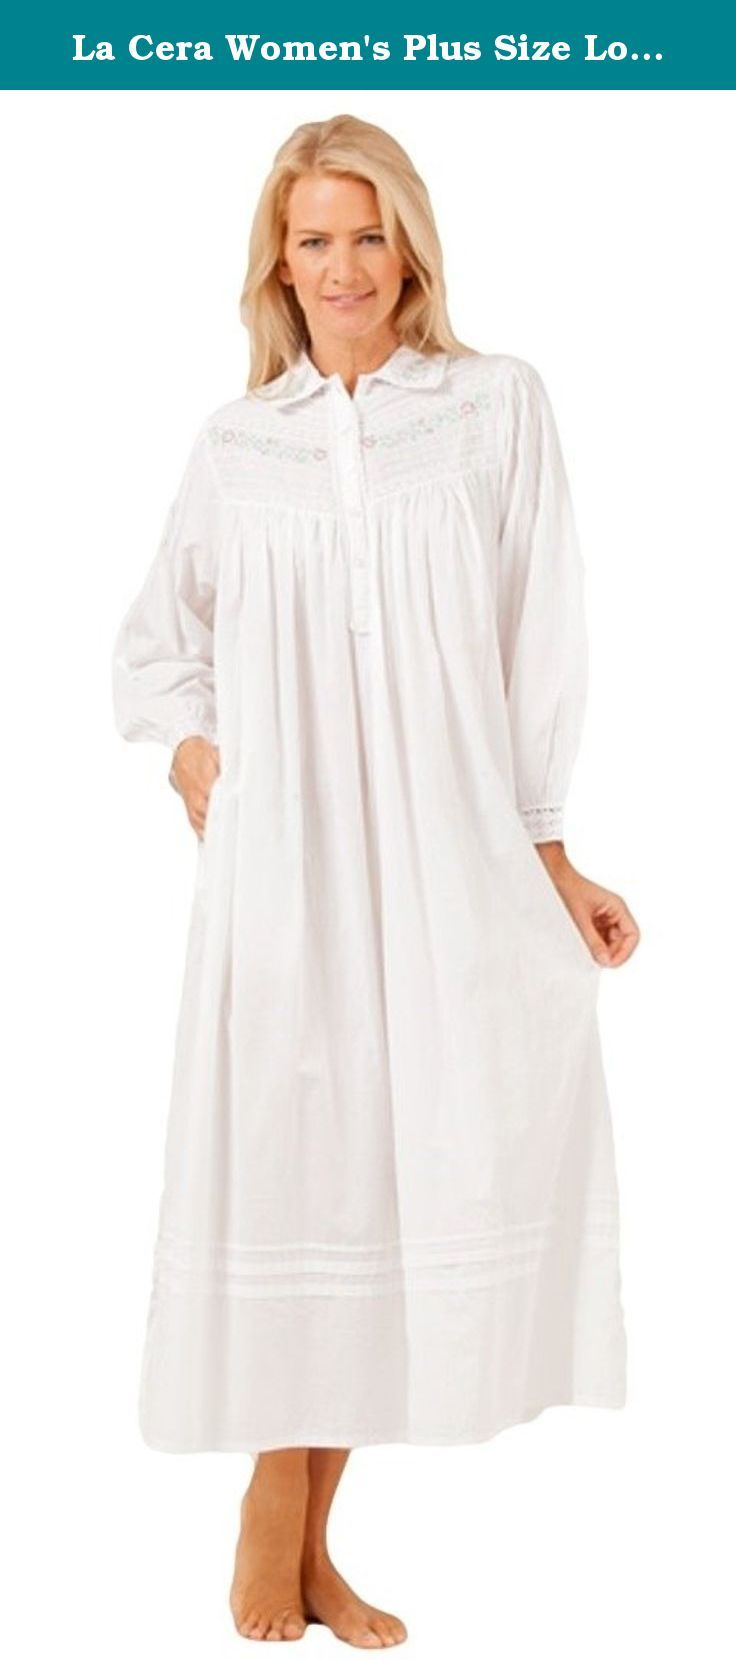 La Cera Women S Plus Size Long Sleeve Nightgown 1x White Soft Easy Cotton Nightgown In A Simply Flattering Soft Woven Night Gown Clothes Plus Size Sleepwear [ 1660 x 736 Pixel ]